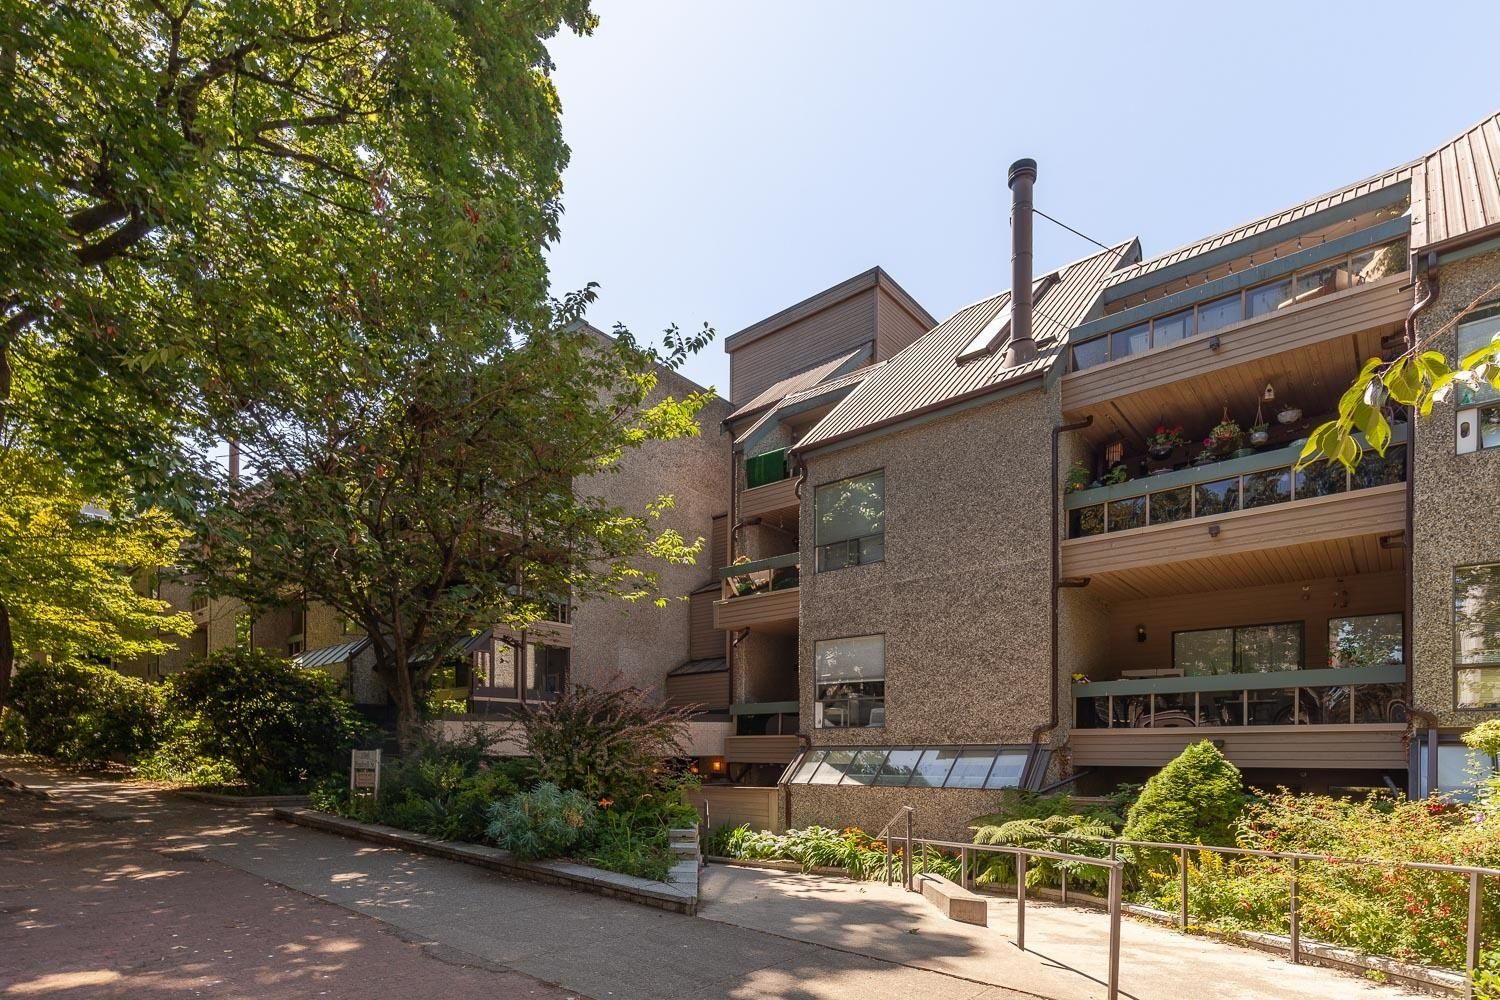 """Main Photo: 216 1500 PENDRELL Street in Vancouver: West End VW Condo for sale in """"Pendrell Mews"""" (Vancouver West)  : MLS®# R2625764"""